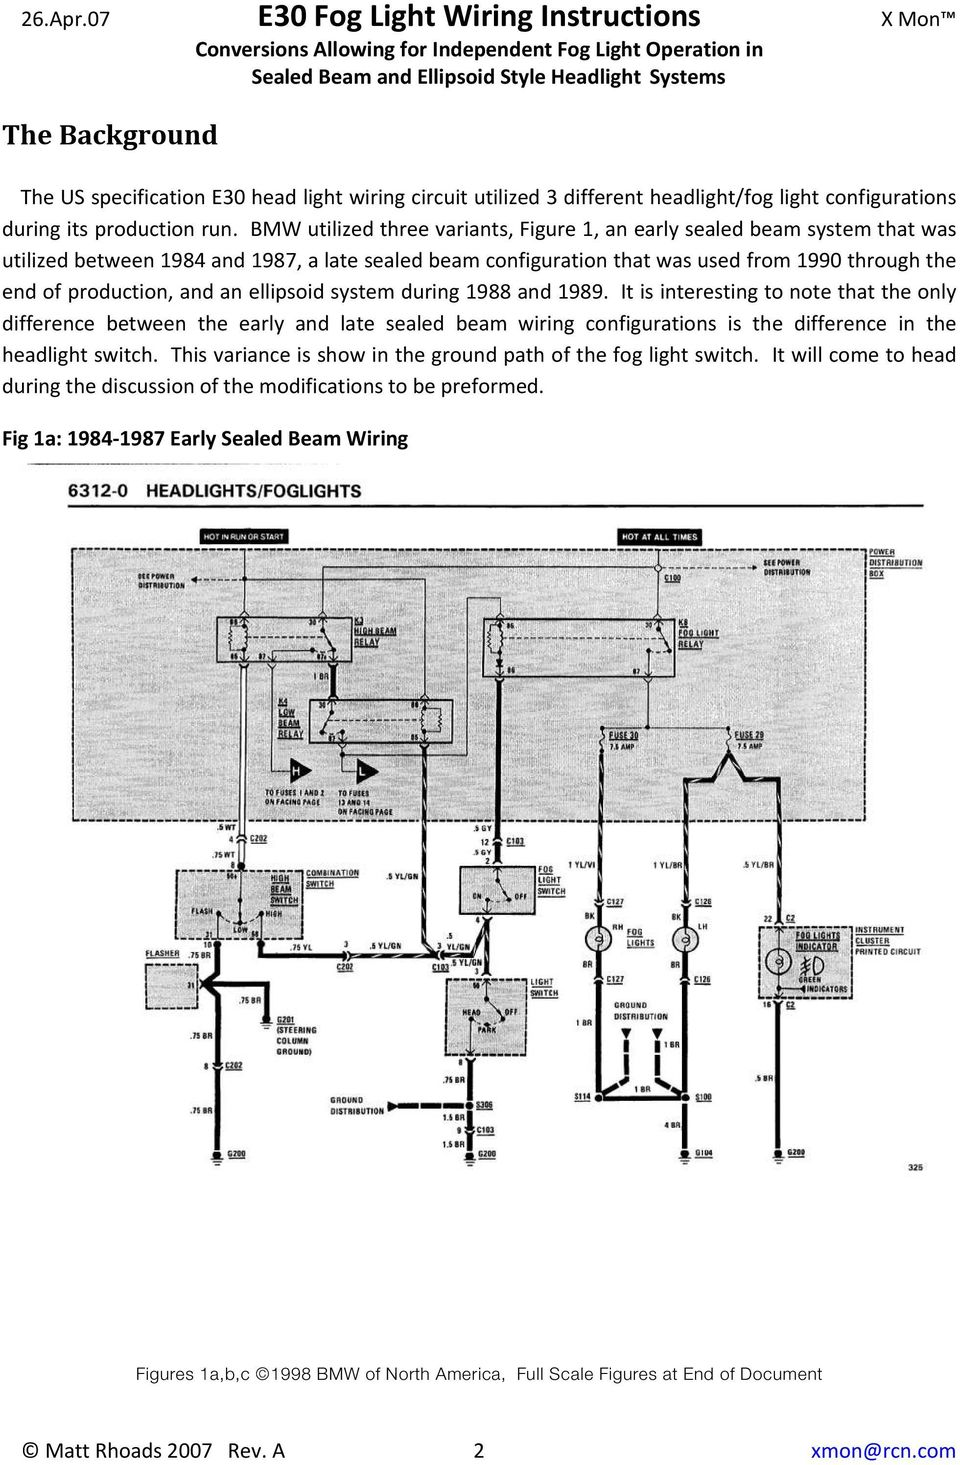 E30 Fog Light Wiring Instructions Conversions Allowing For 12 Volt Lamp Diagram An Ellipsoid System During 1988 And 1989 It Is Interesting To Note That The Only